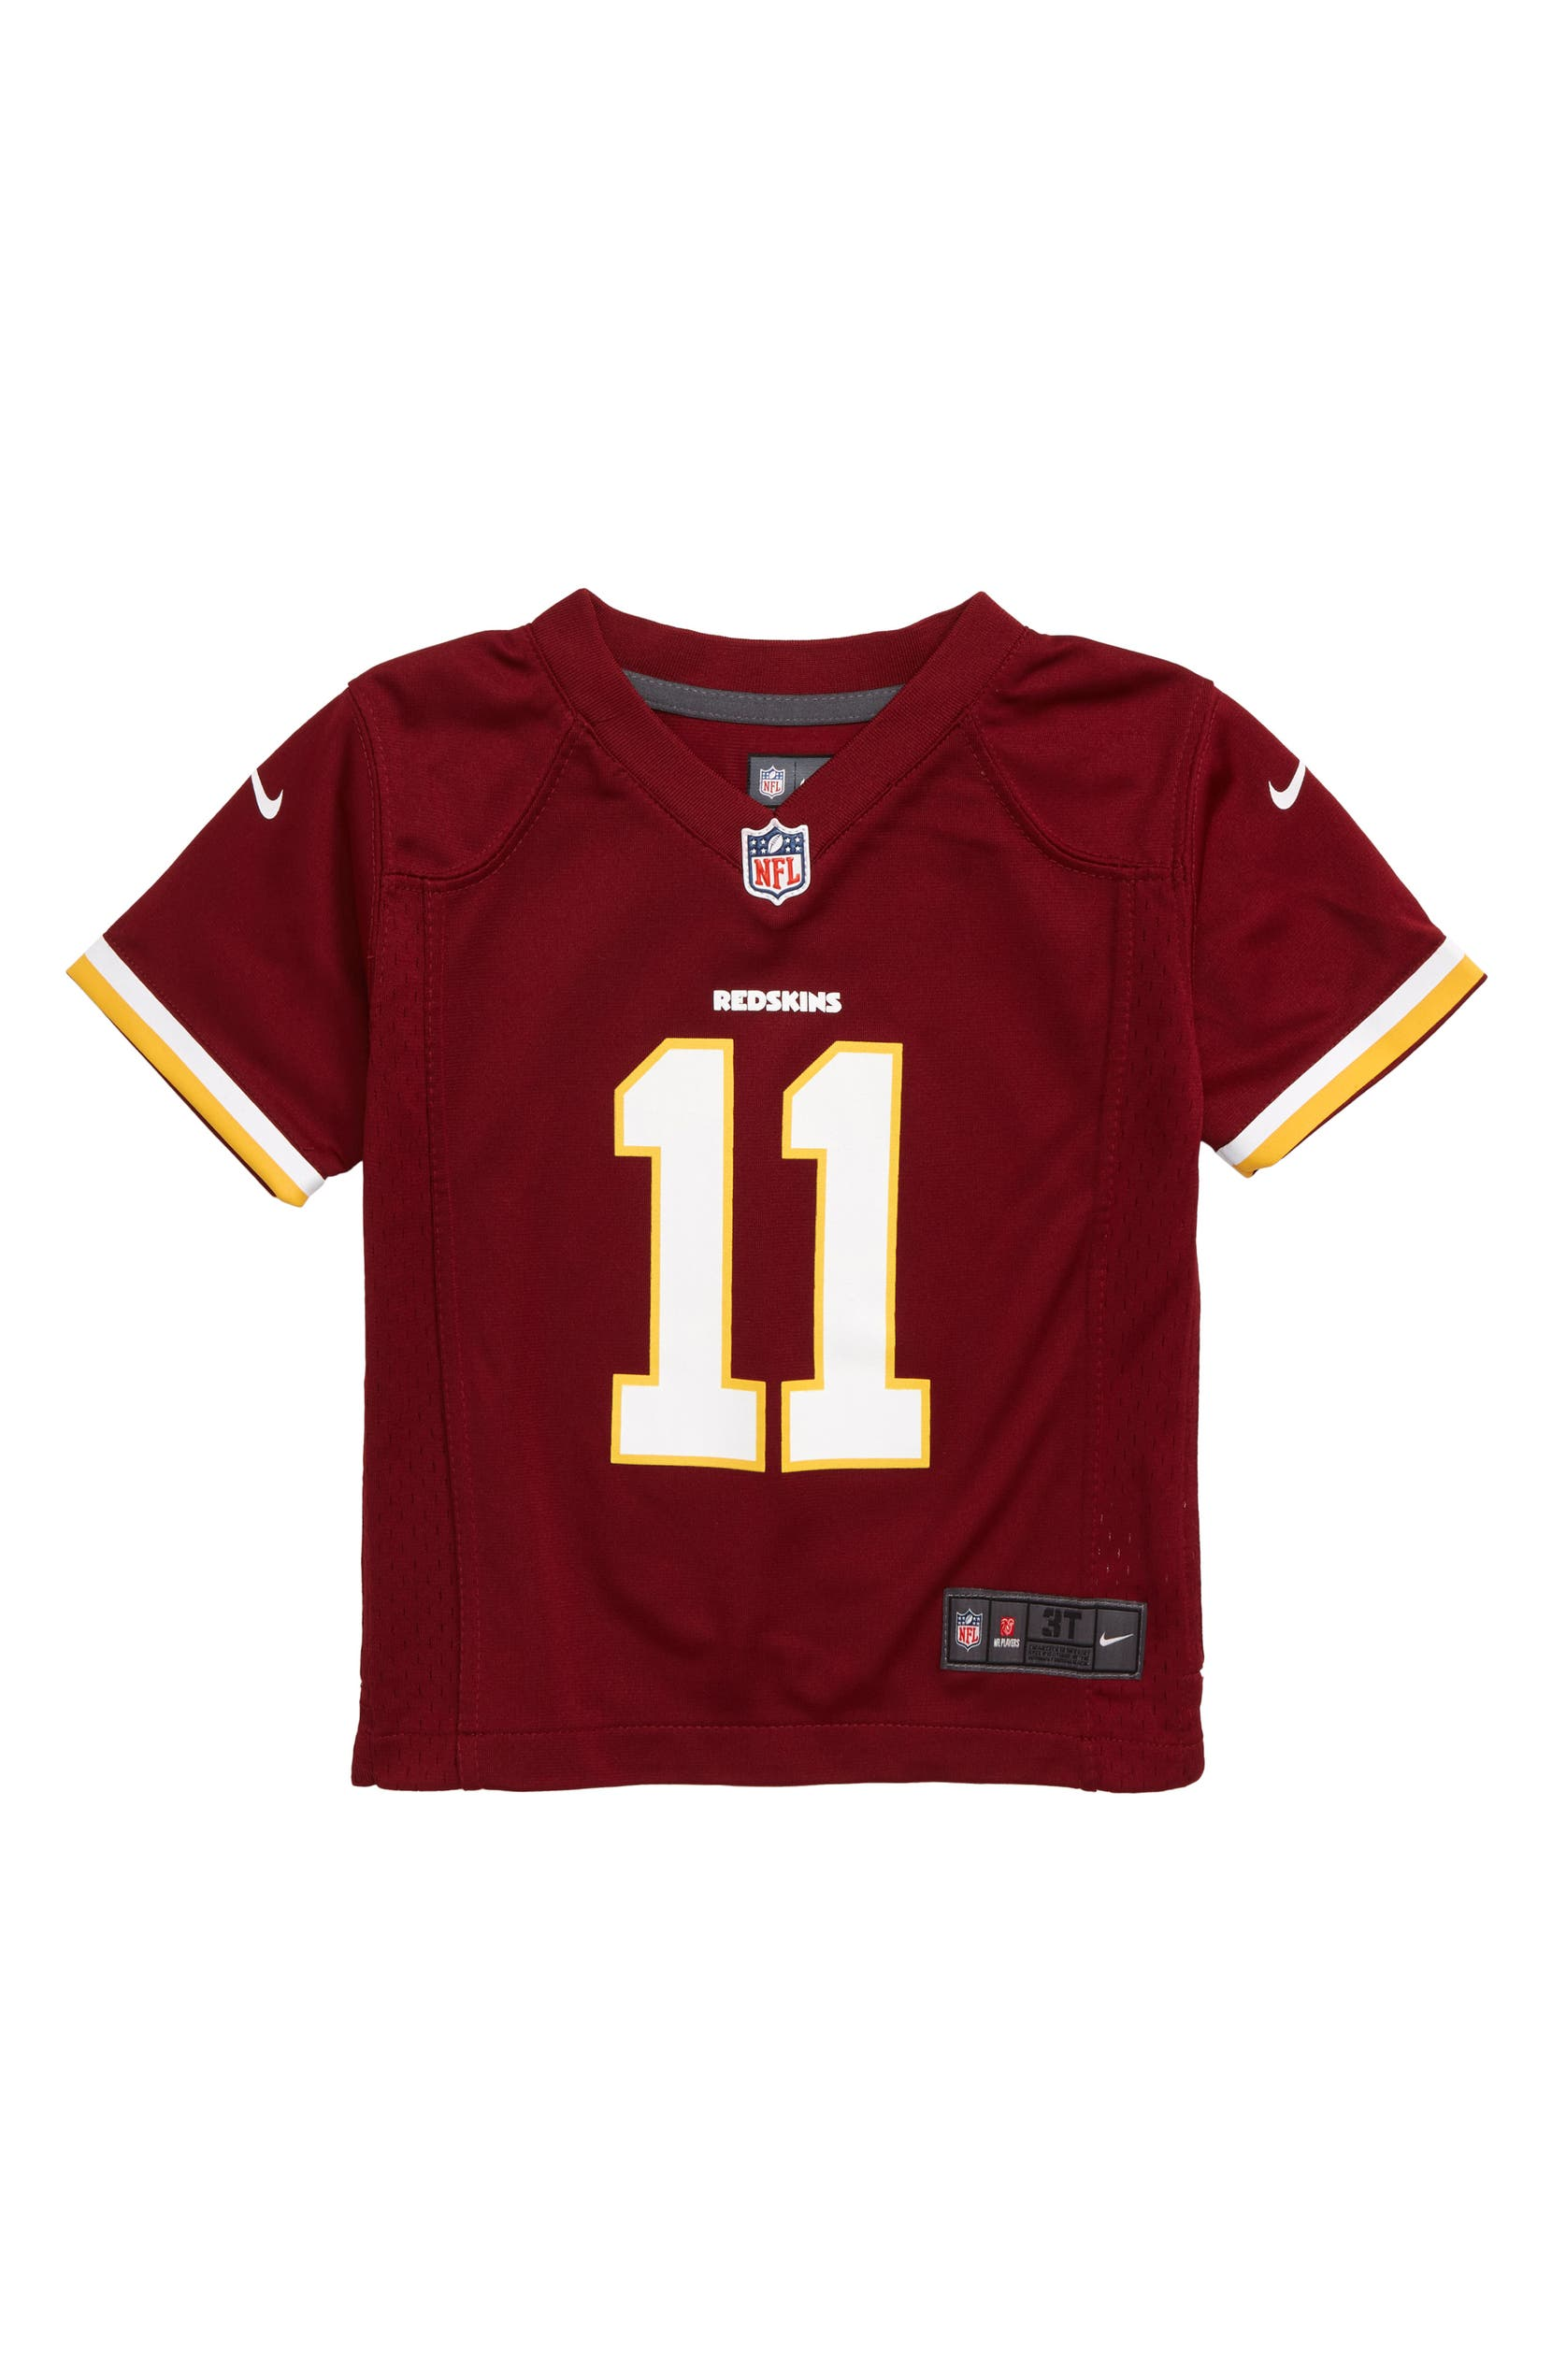 best service 631e2 7e240 Nike NFL Washington Redskins Alex Smith Jersey (Toddler Boys ...